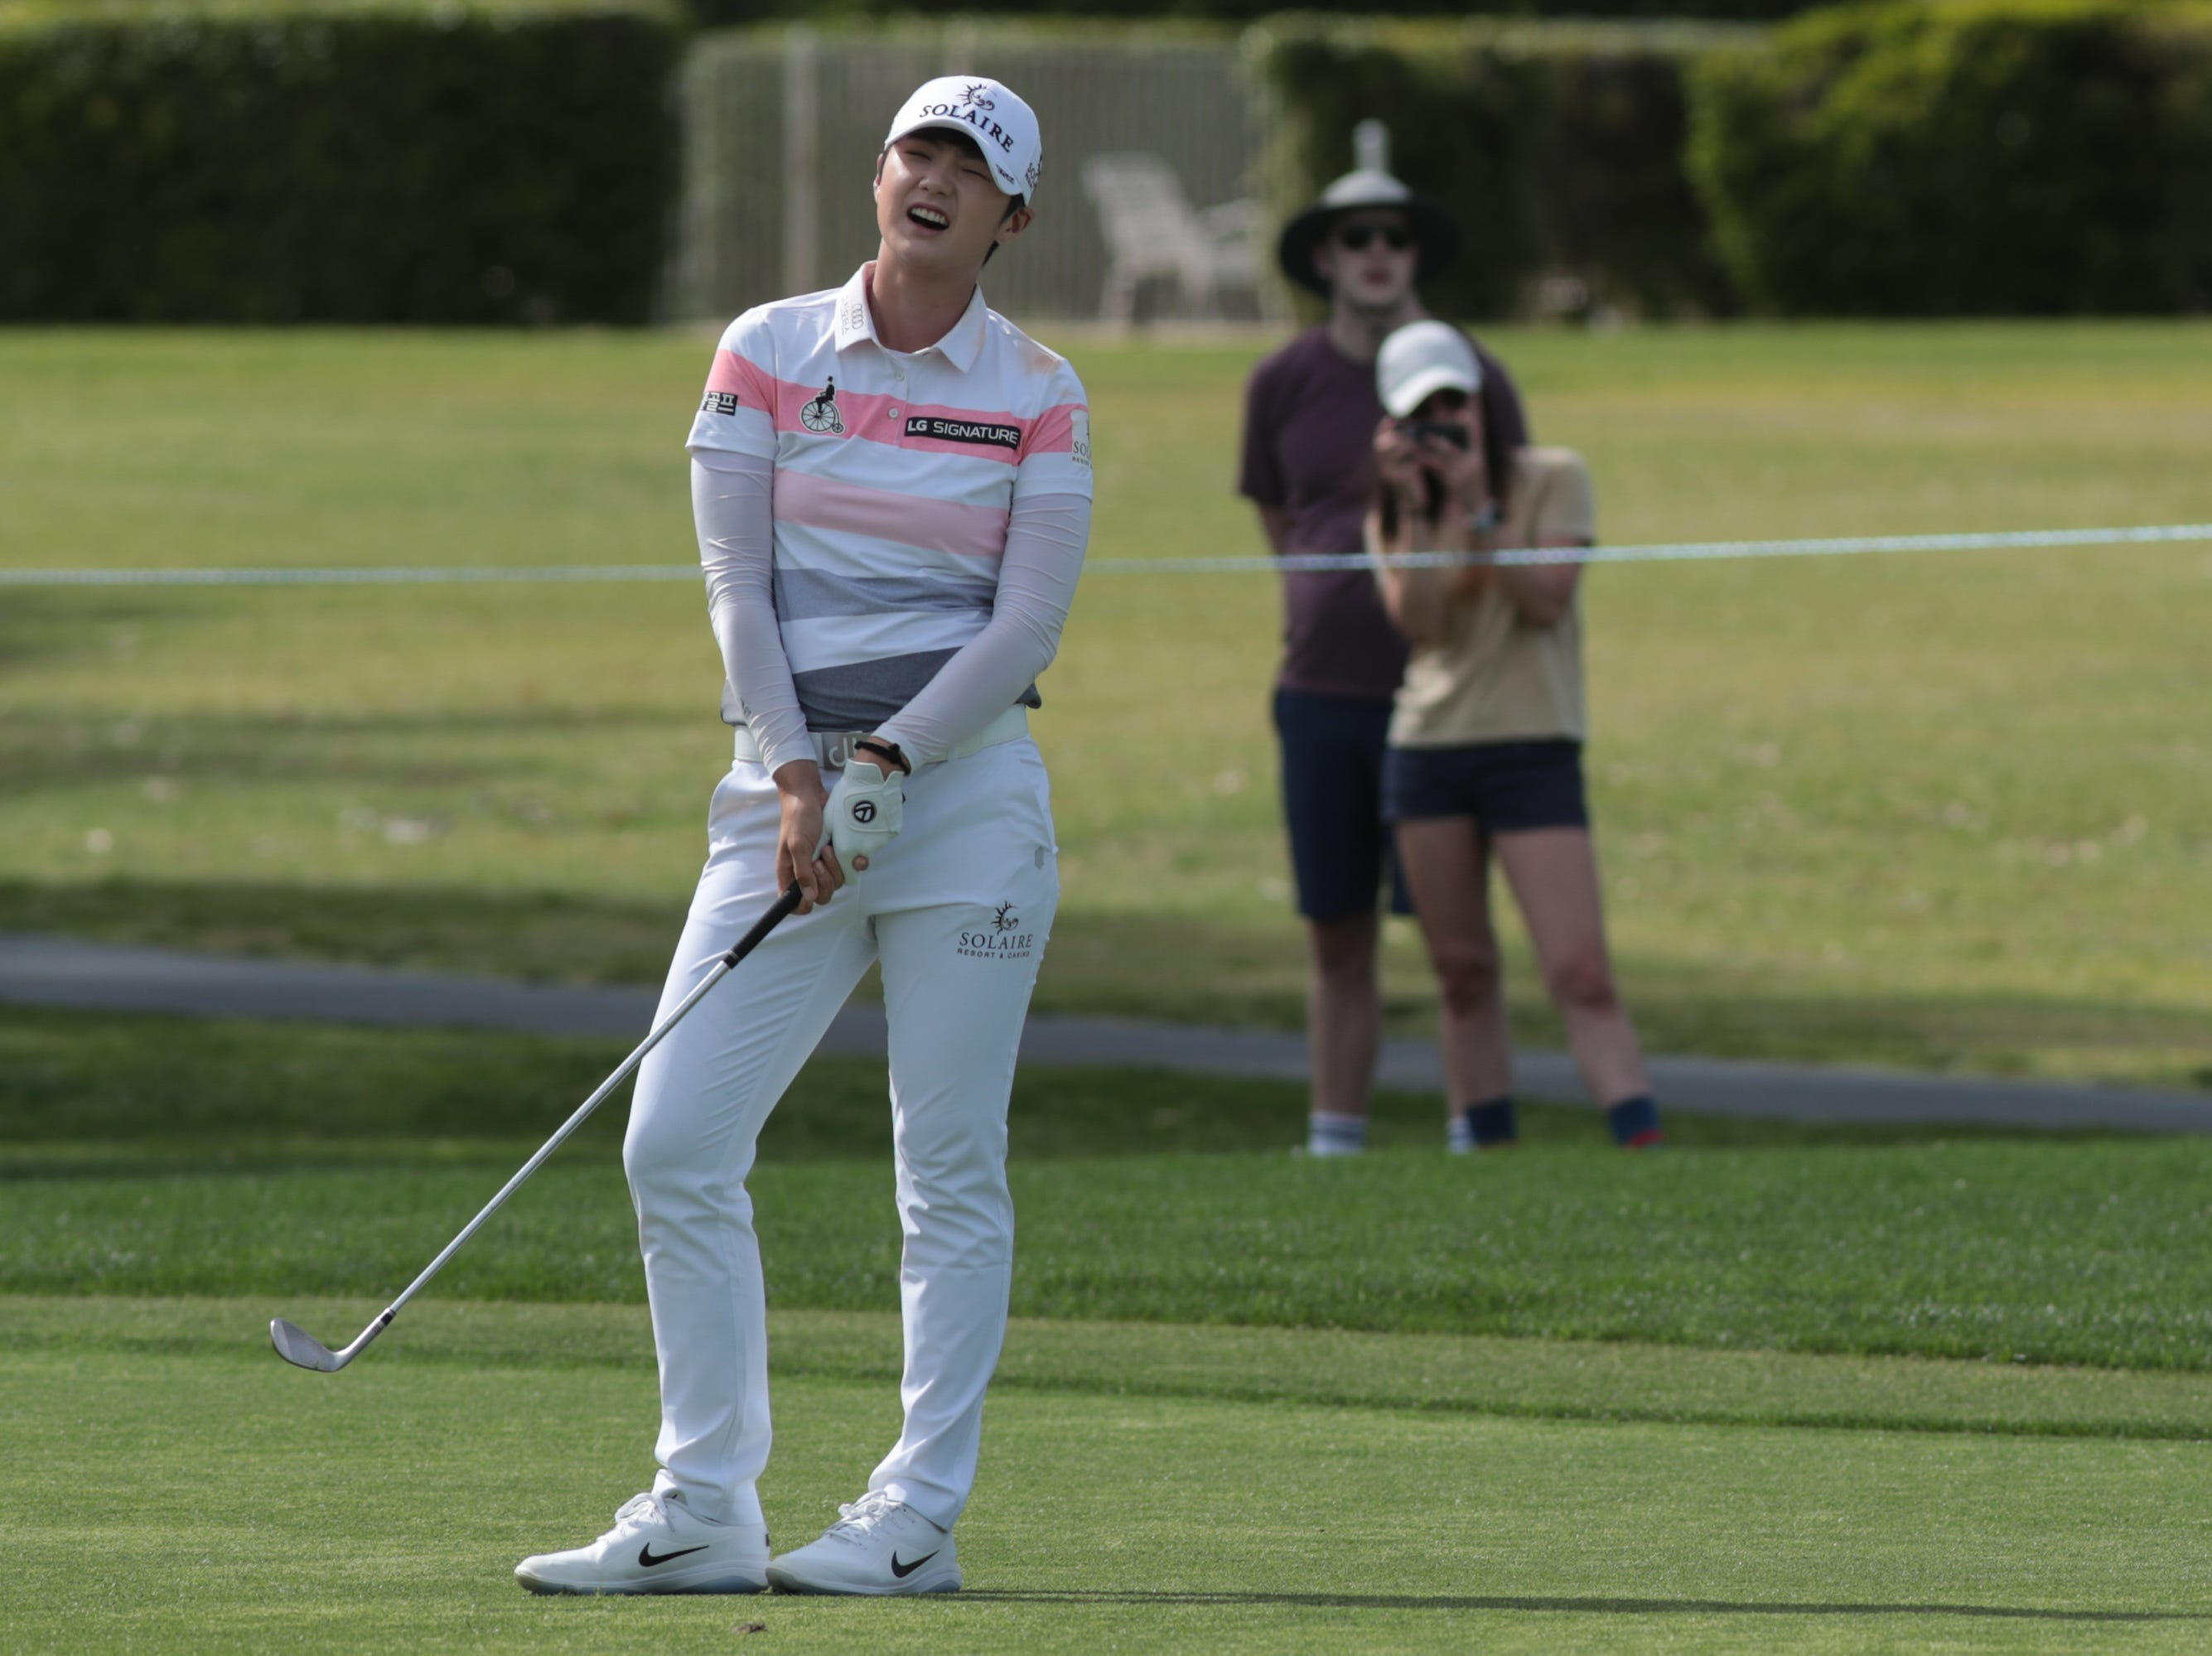 Sung Hyun Park reacts after a bad shot on the ninth hole of the Dinah Shore Course at the ANA Inspiration, Rancho Mirage, Calif., April 6, 2019.